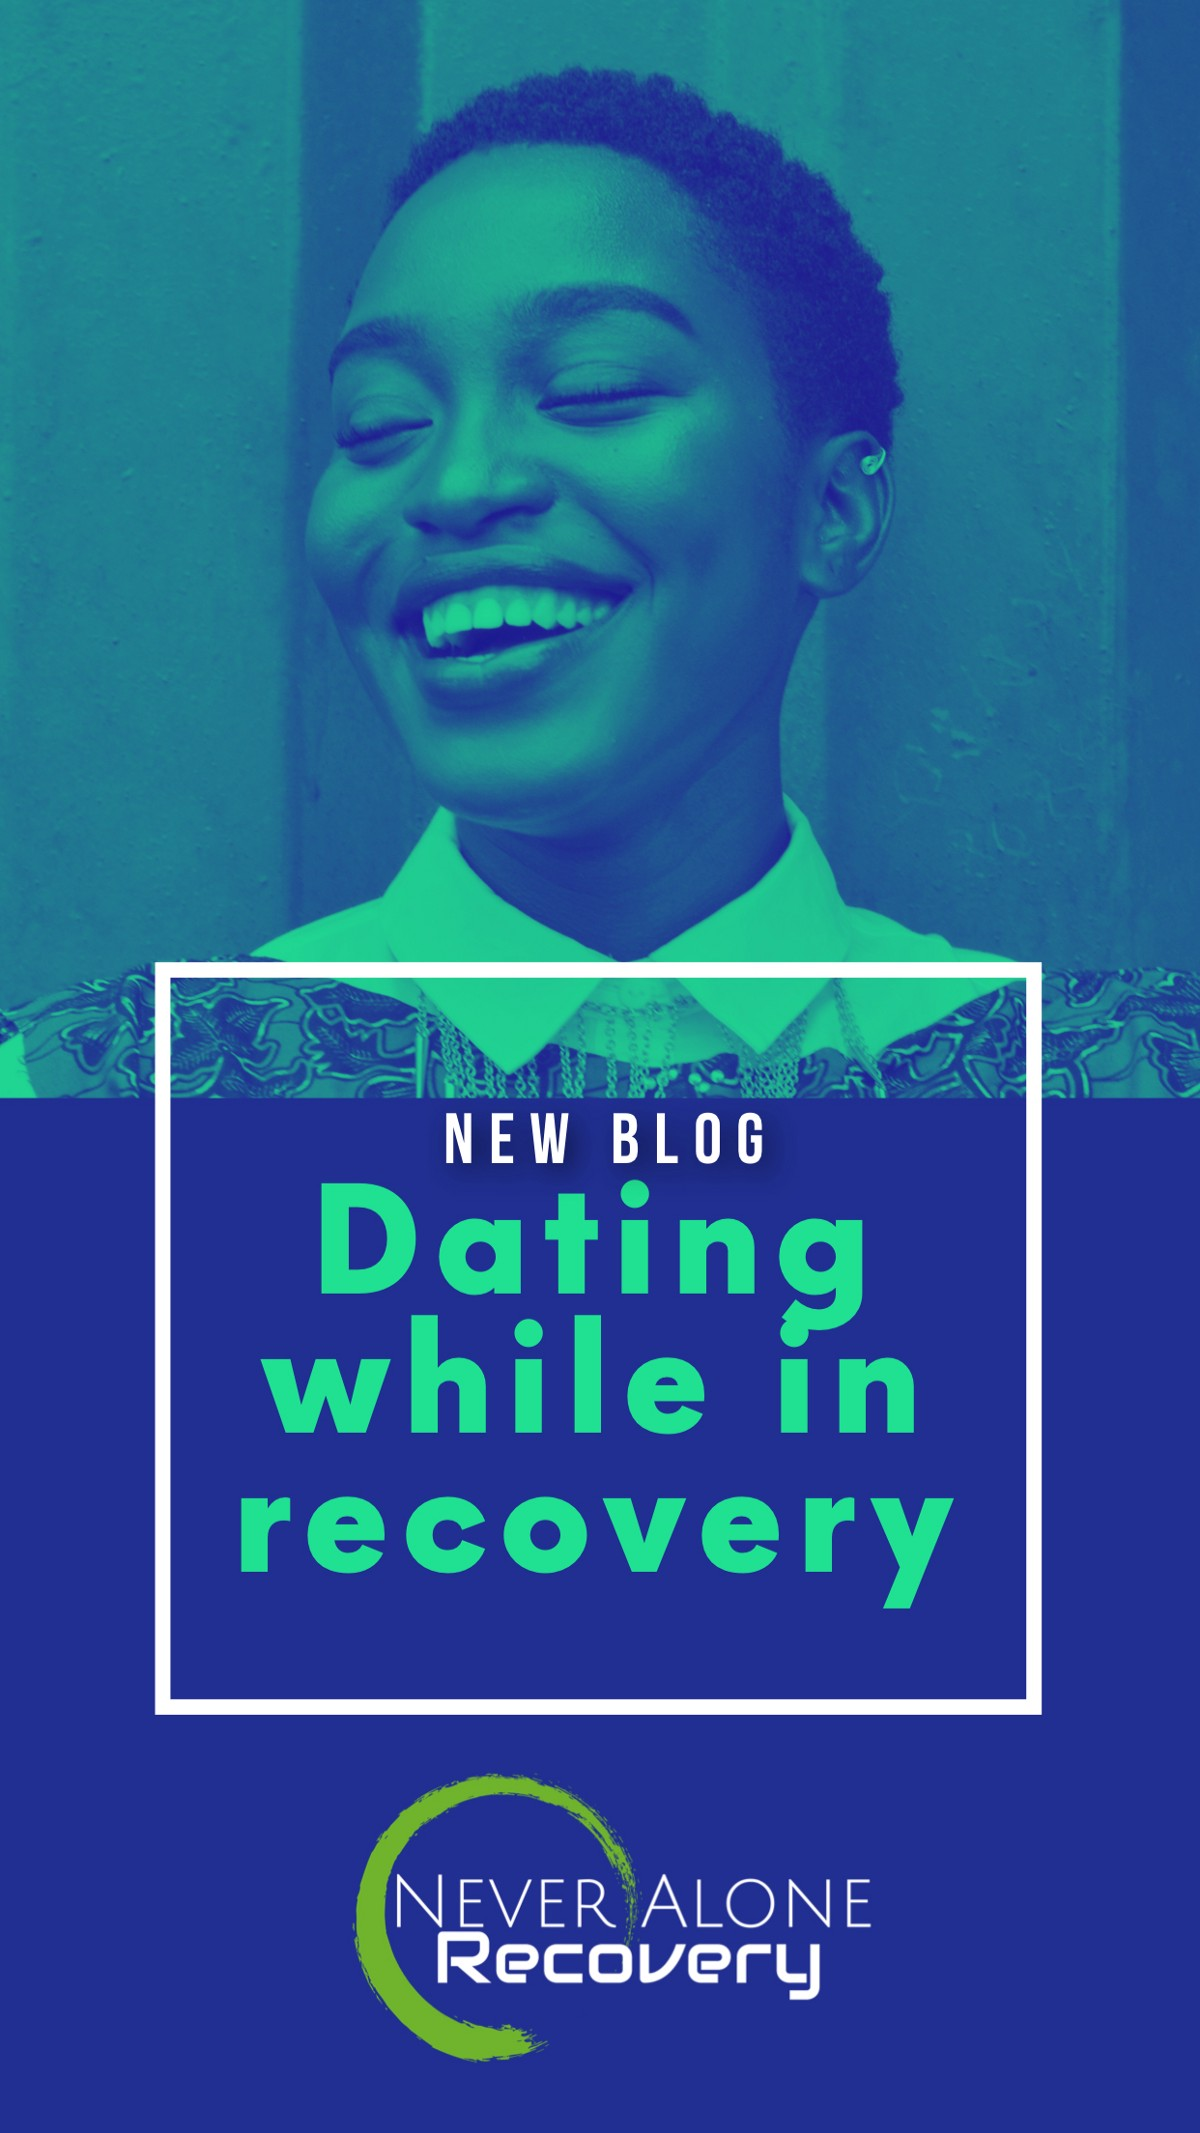 dating someone not in recovery